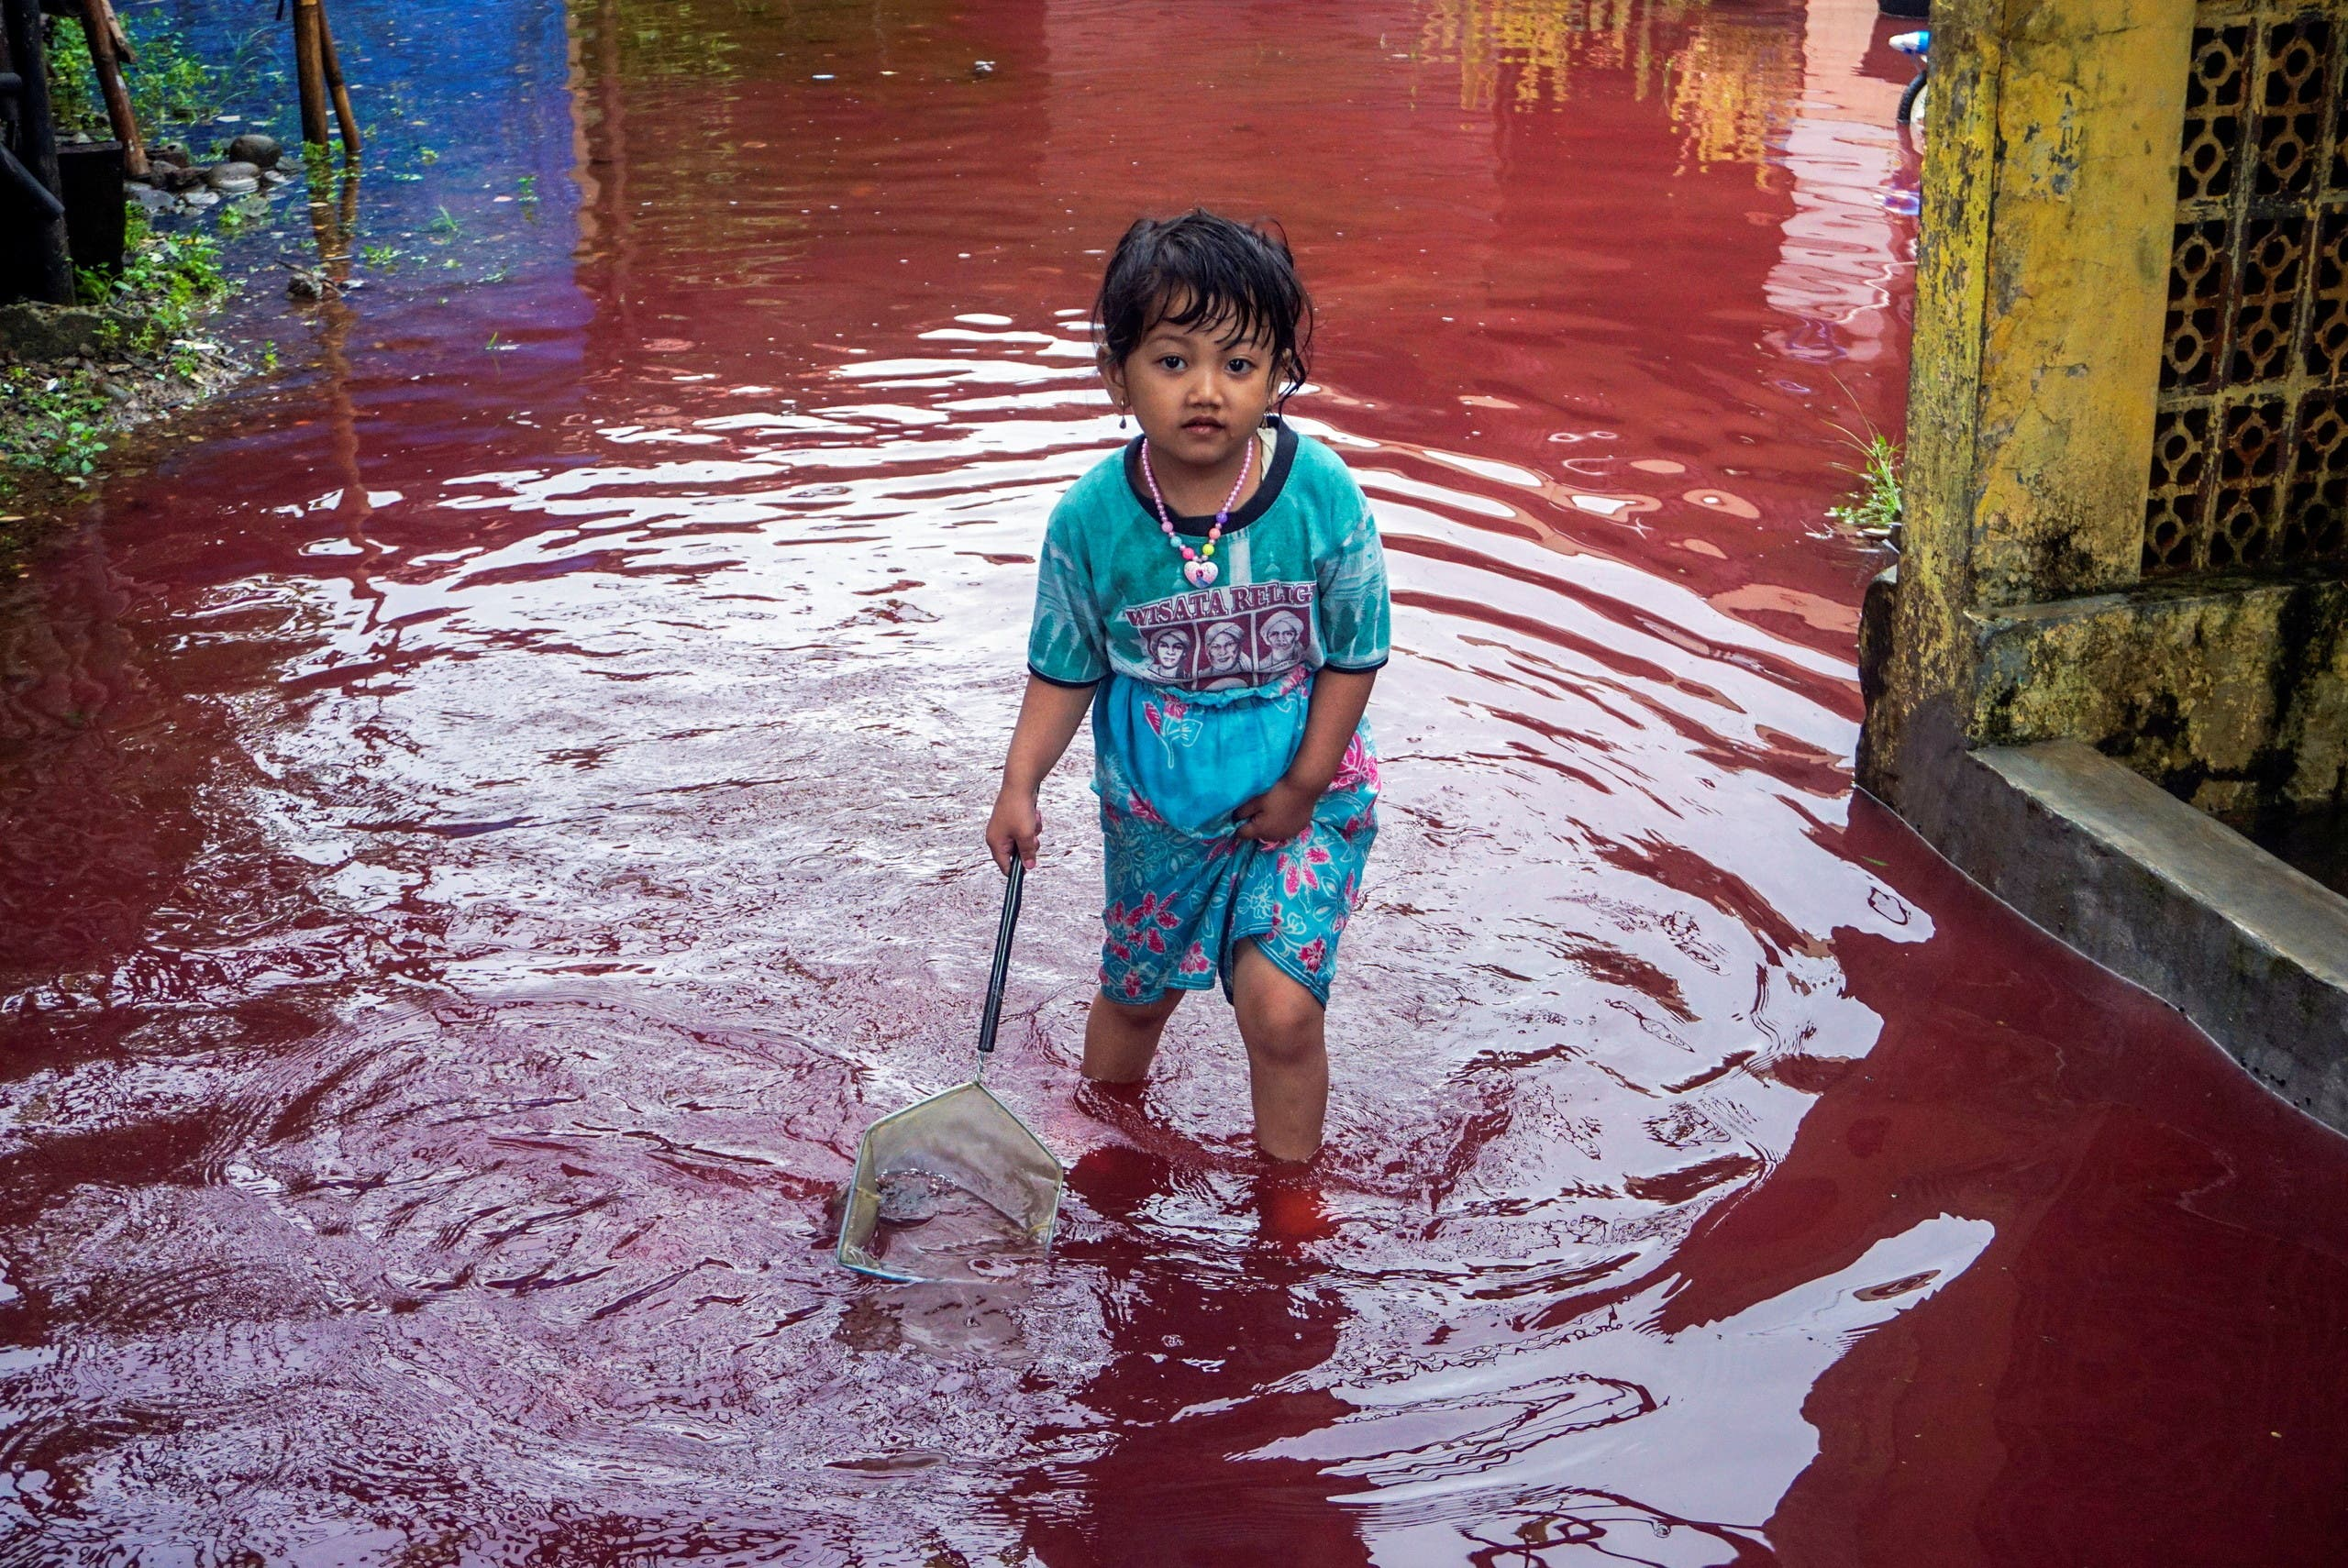 A girl walks through a flooded road with red water due to the dye-waste from cloth factories, in Pekalongan, Central Java province, Indonesia, February 6, 2021. (Reuters)